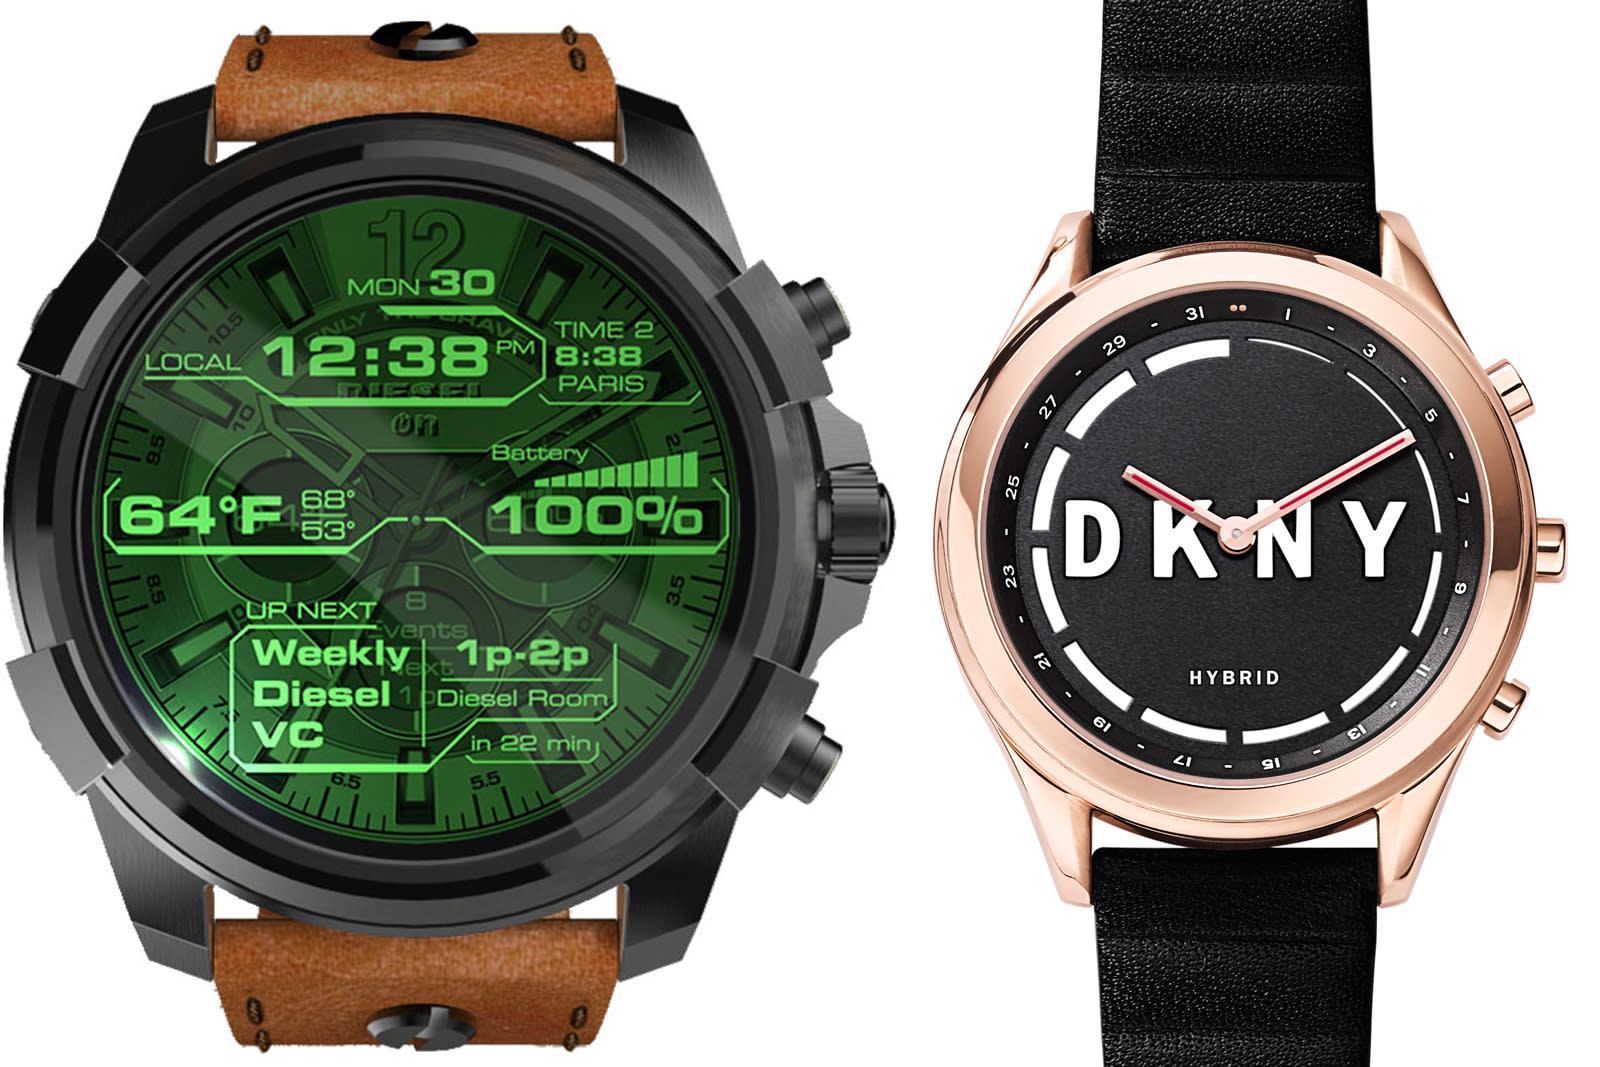 b7937d956 Fossil will give you 300 new smartwatch options in 2017